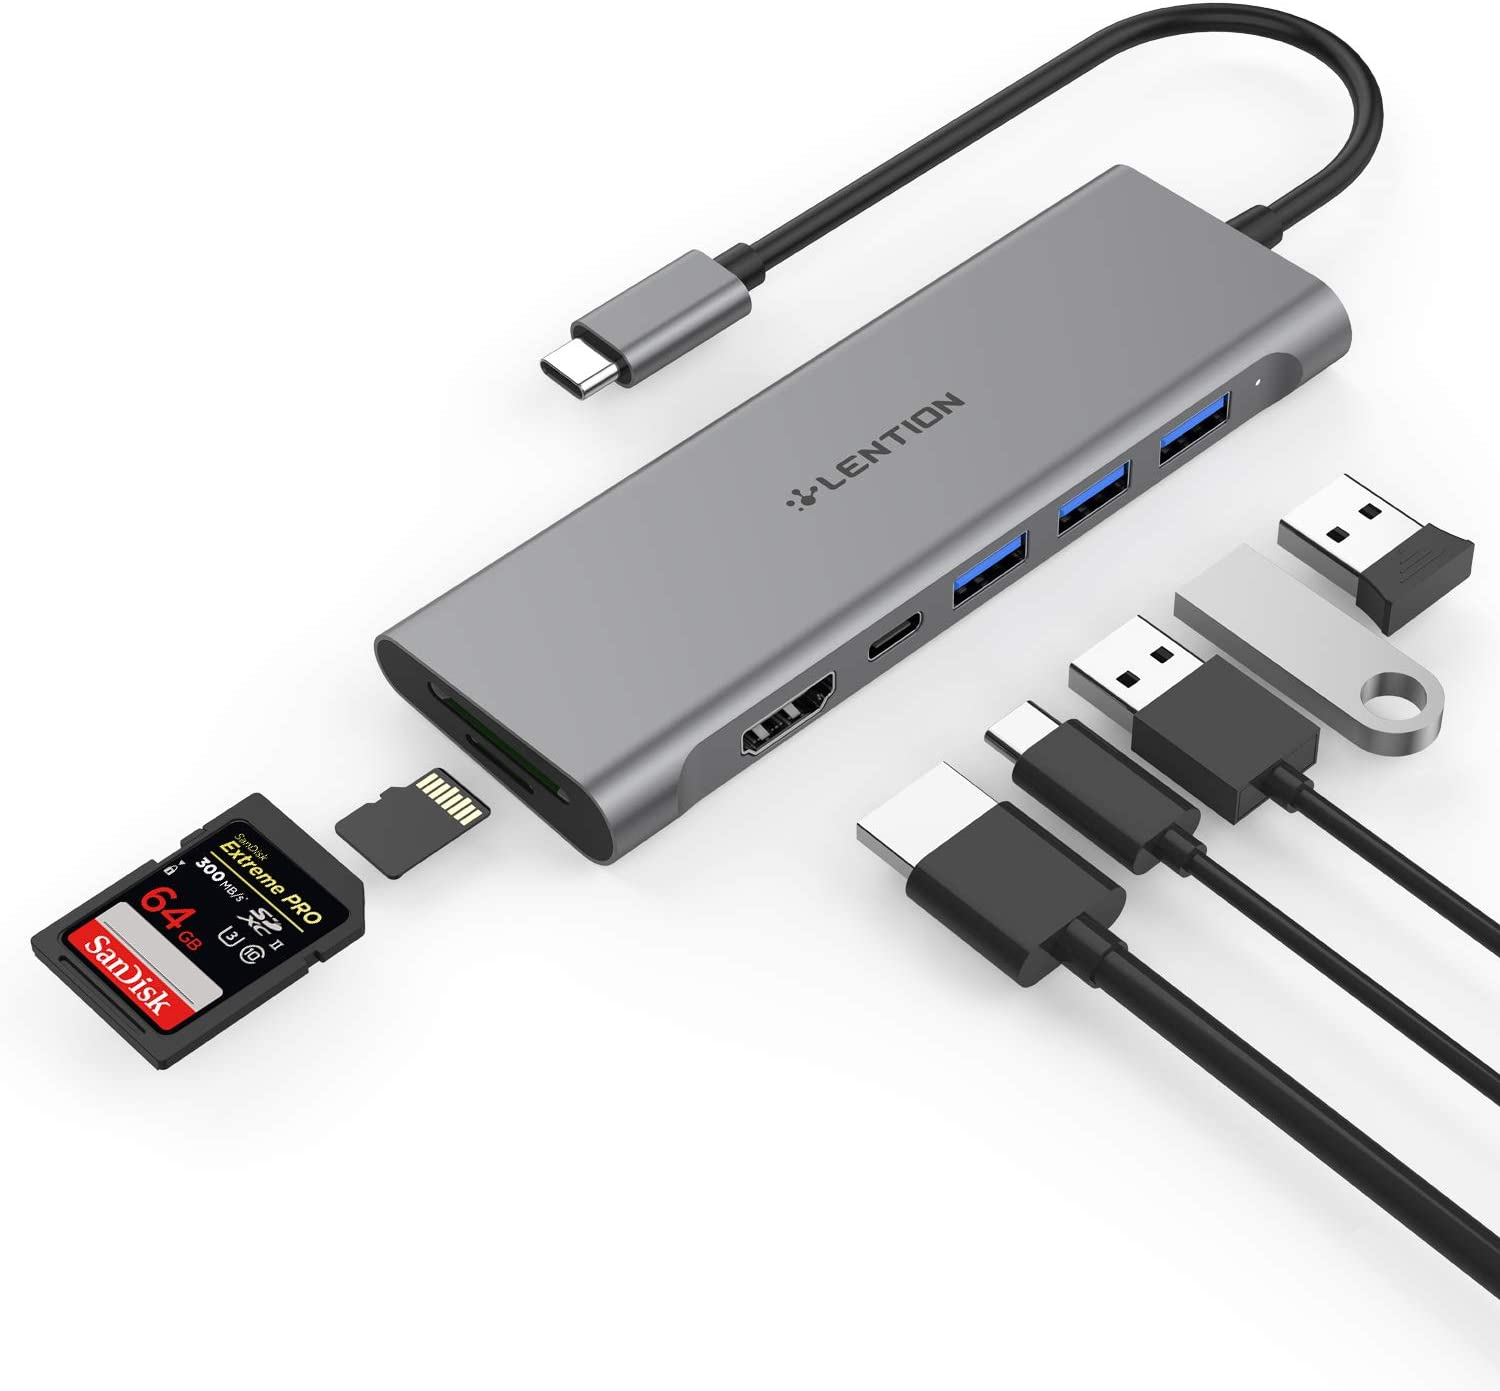 LENTION USB C Multi-Port Hub with 4K HDMI, 3 USB 3.0, SD/Micro SD Reader, Type C Charging Adapter for 2020-2016 MacBook Pro (Thunderbolt 3), New Mac Air/Surface, Chromebook, More (CB-C36B, Space Gray)